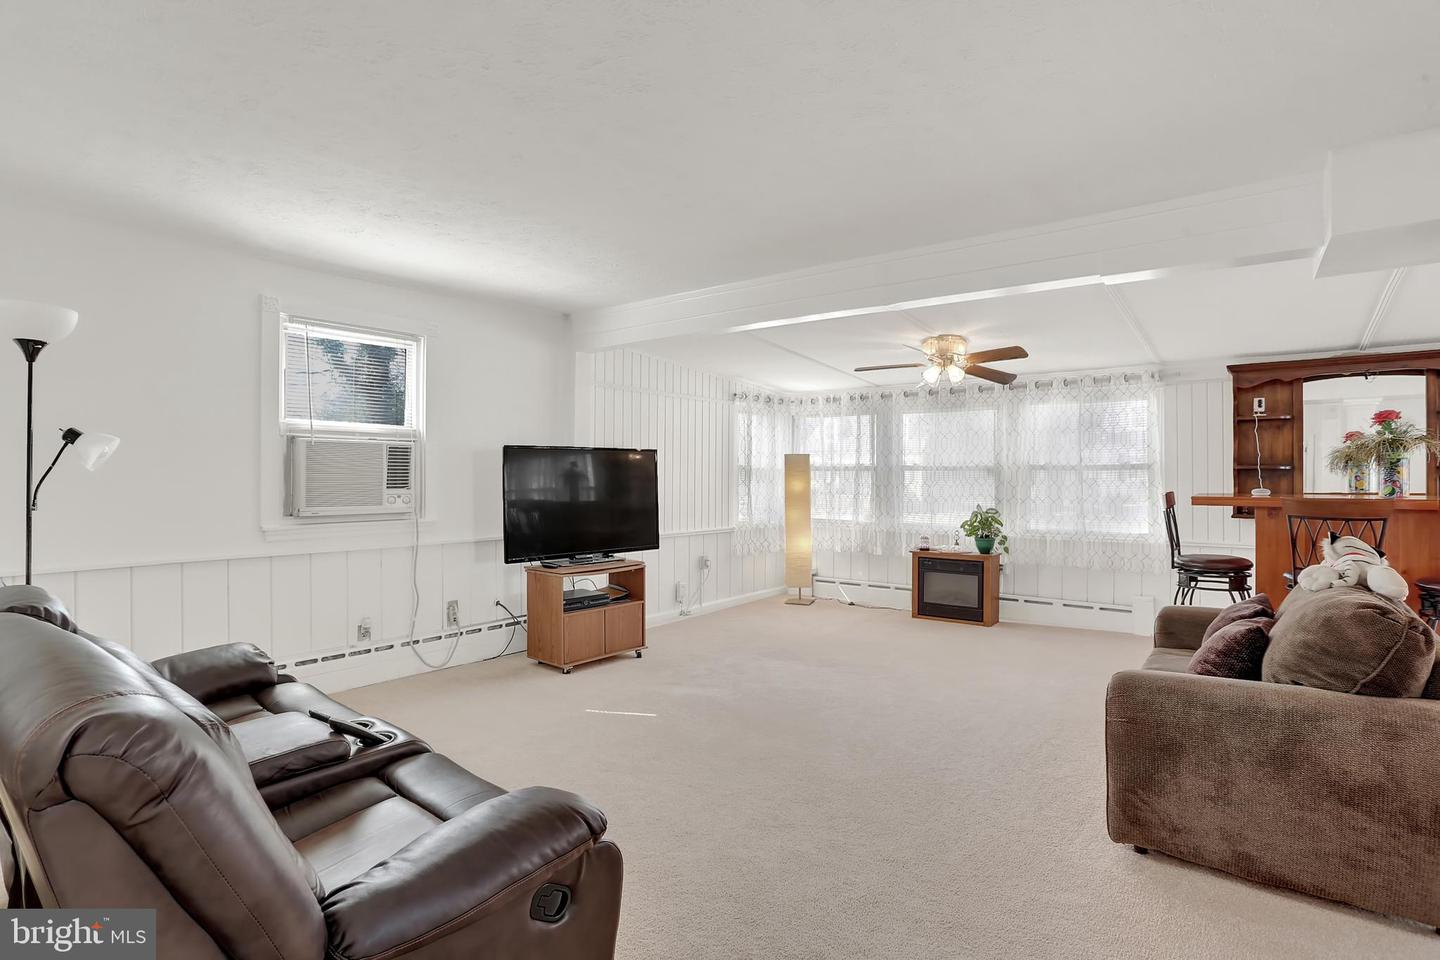 Additional photo for property listing at 4602 Morgan Rd Morningside, Maryland 20746 United States